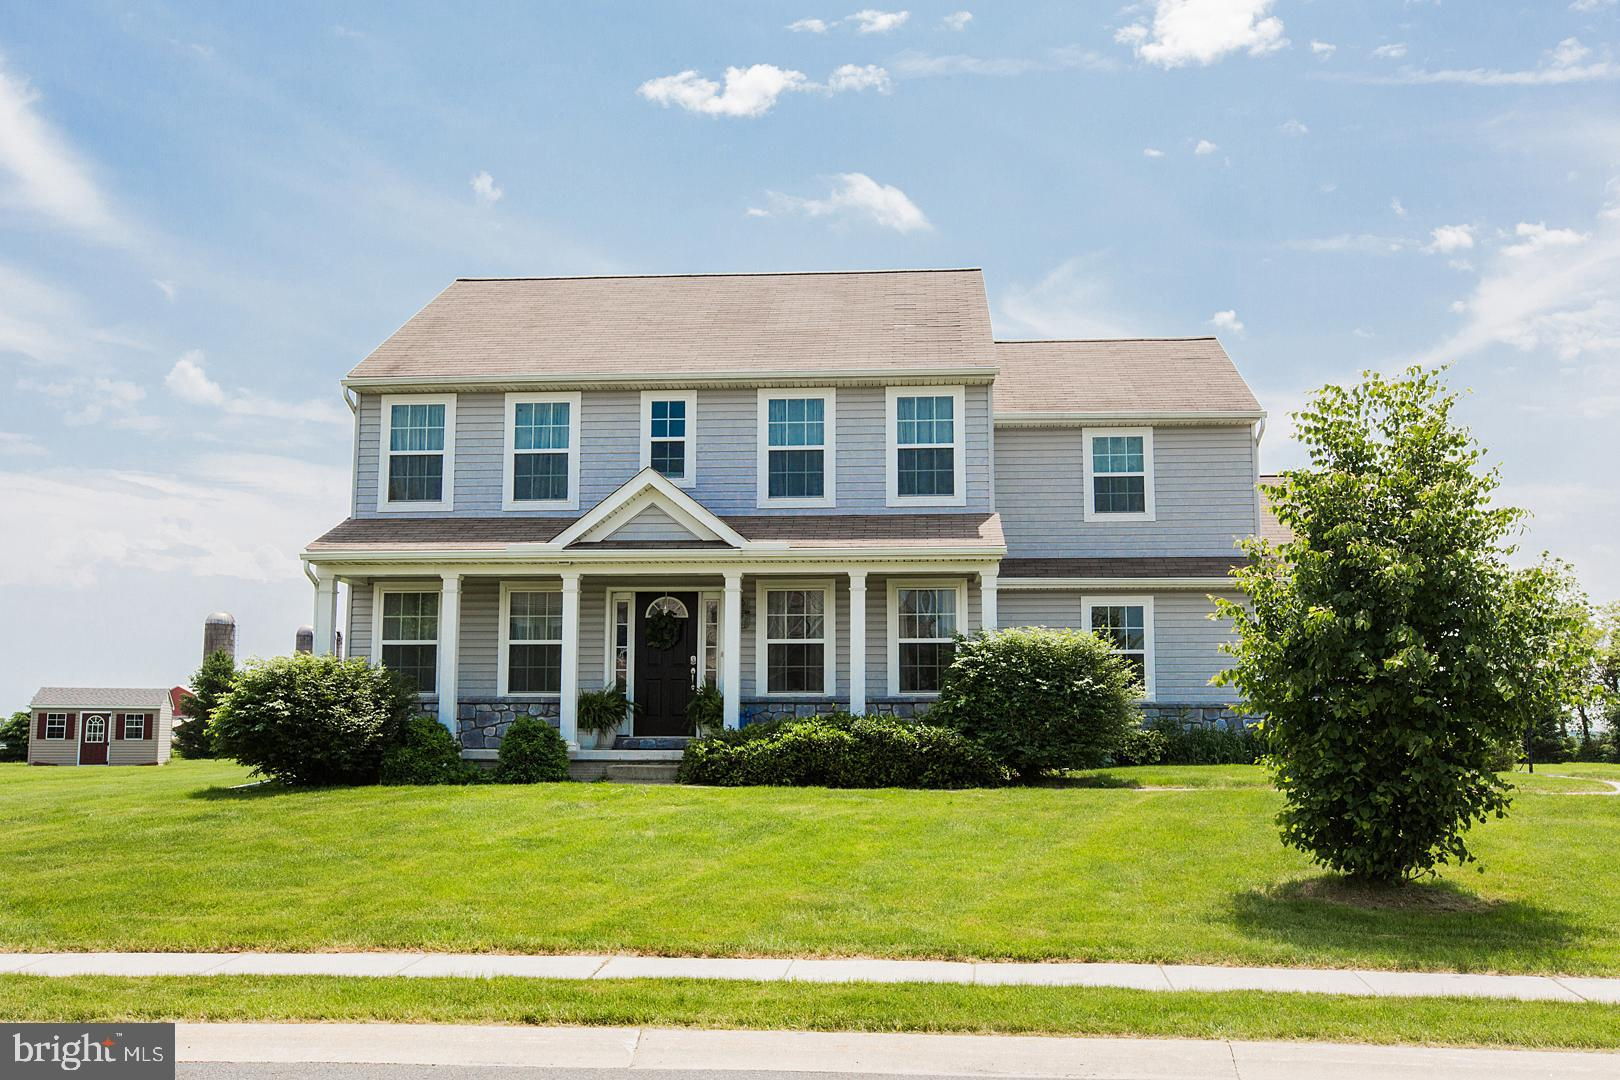 119 WHITEHORSE DRIVE, HONEY BROOK, PA 19344